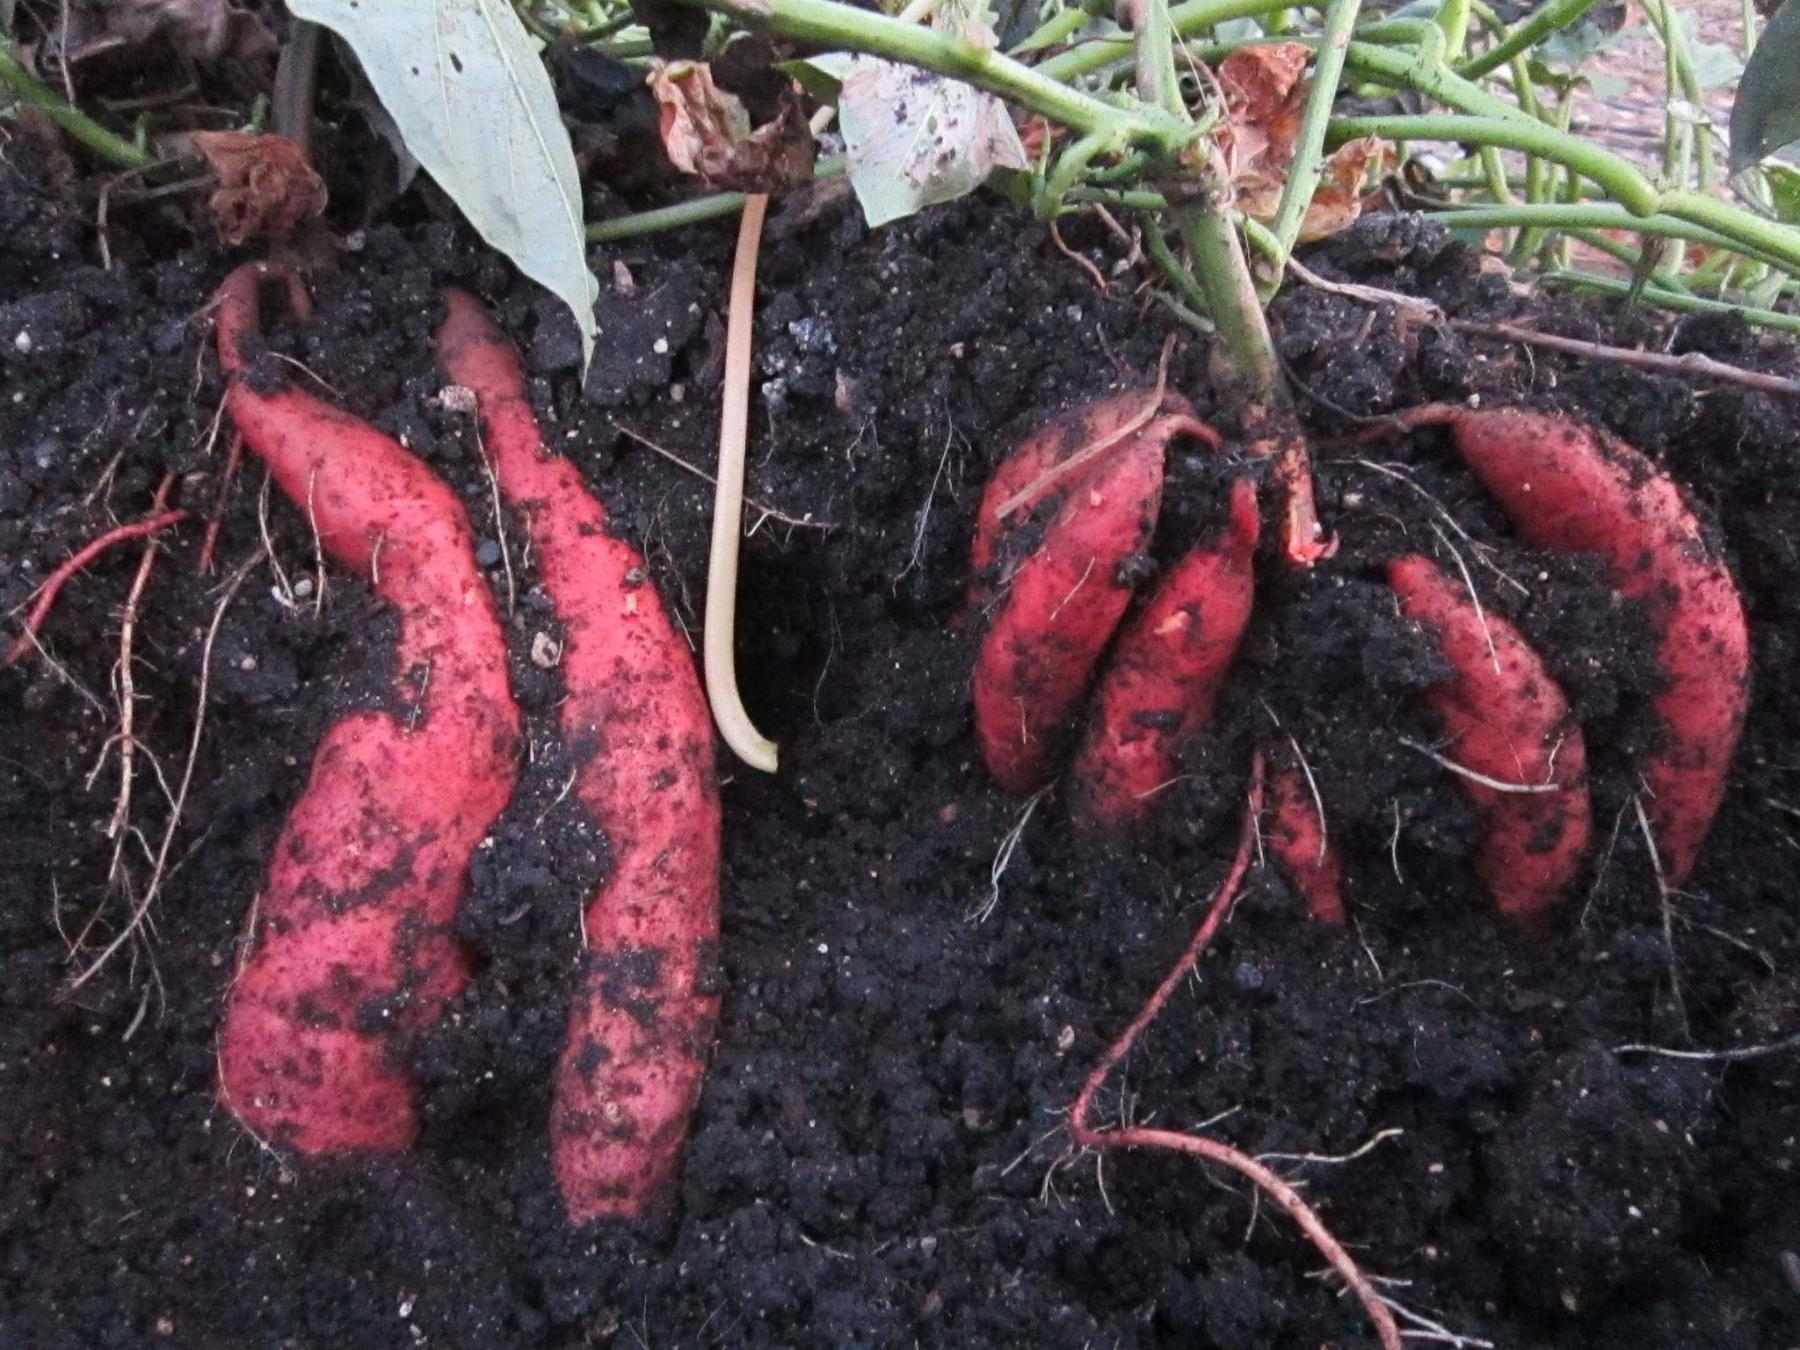 <p>Tiffany Grenkow</p><p>Sweet potato tubers growing in the soil.</p></p>